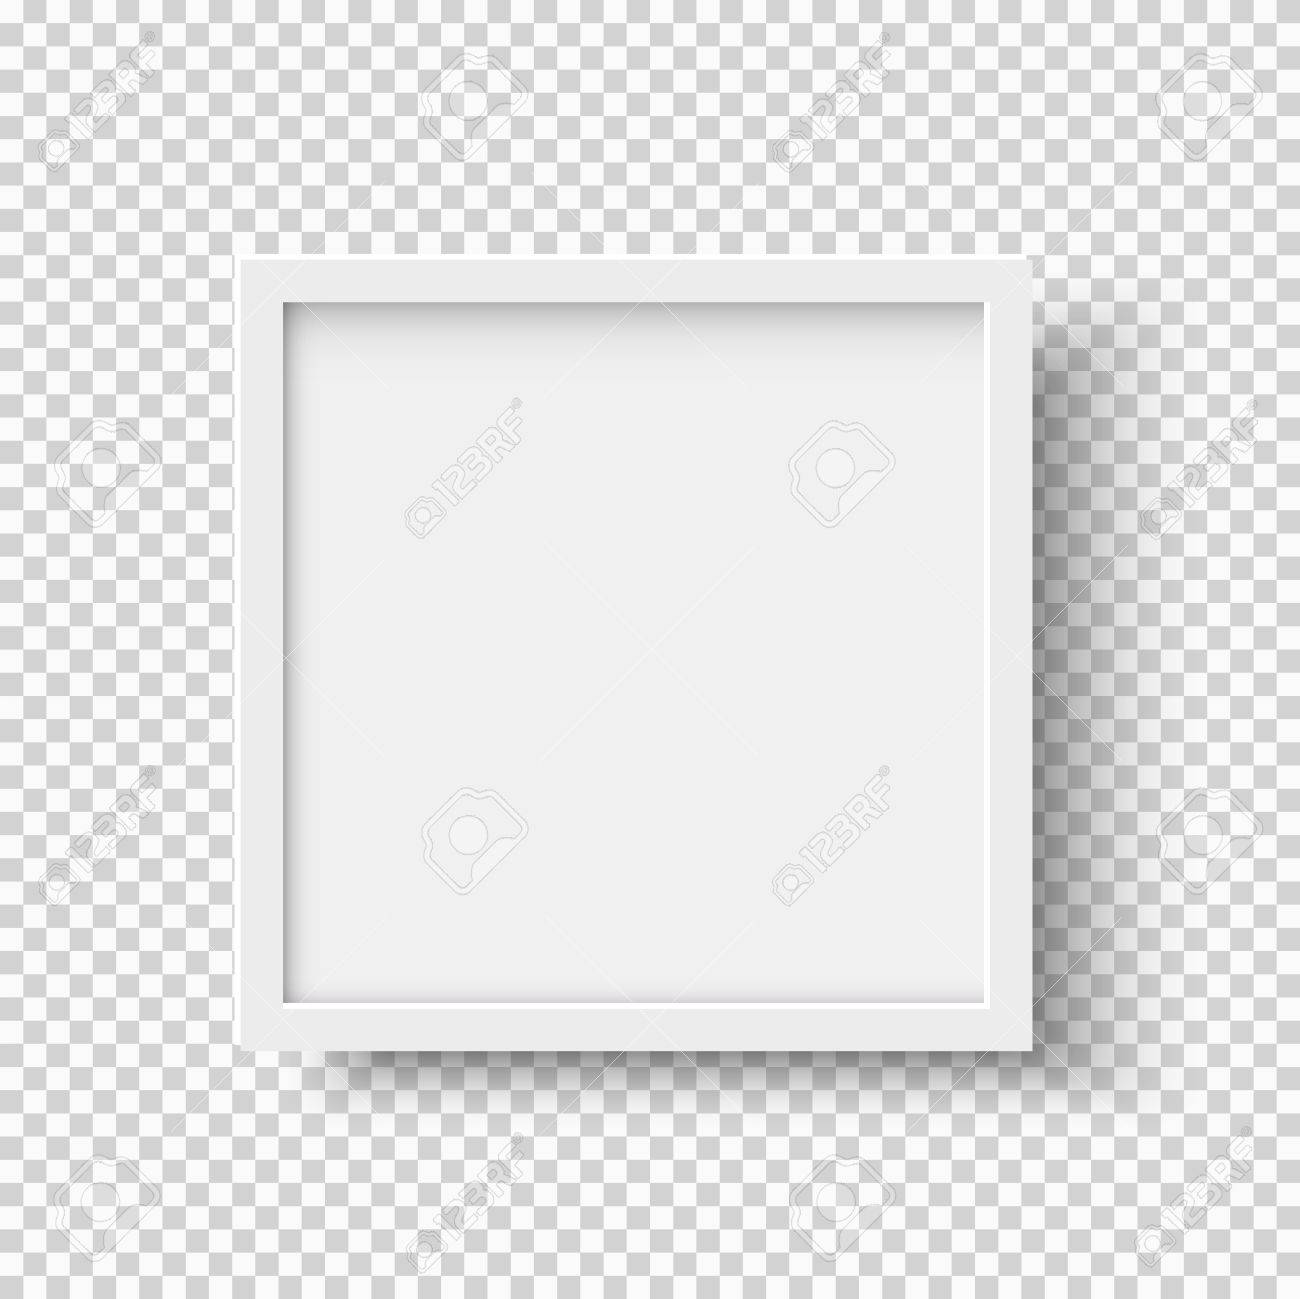 White Realistic Square Empty Picture Frame On Transparent Background ...